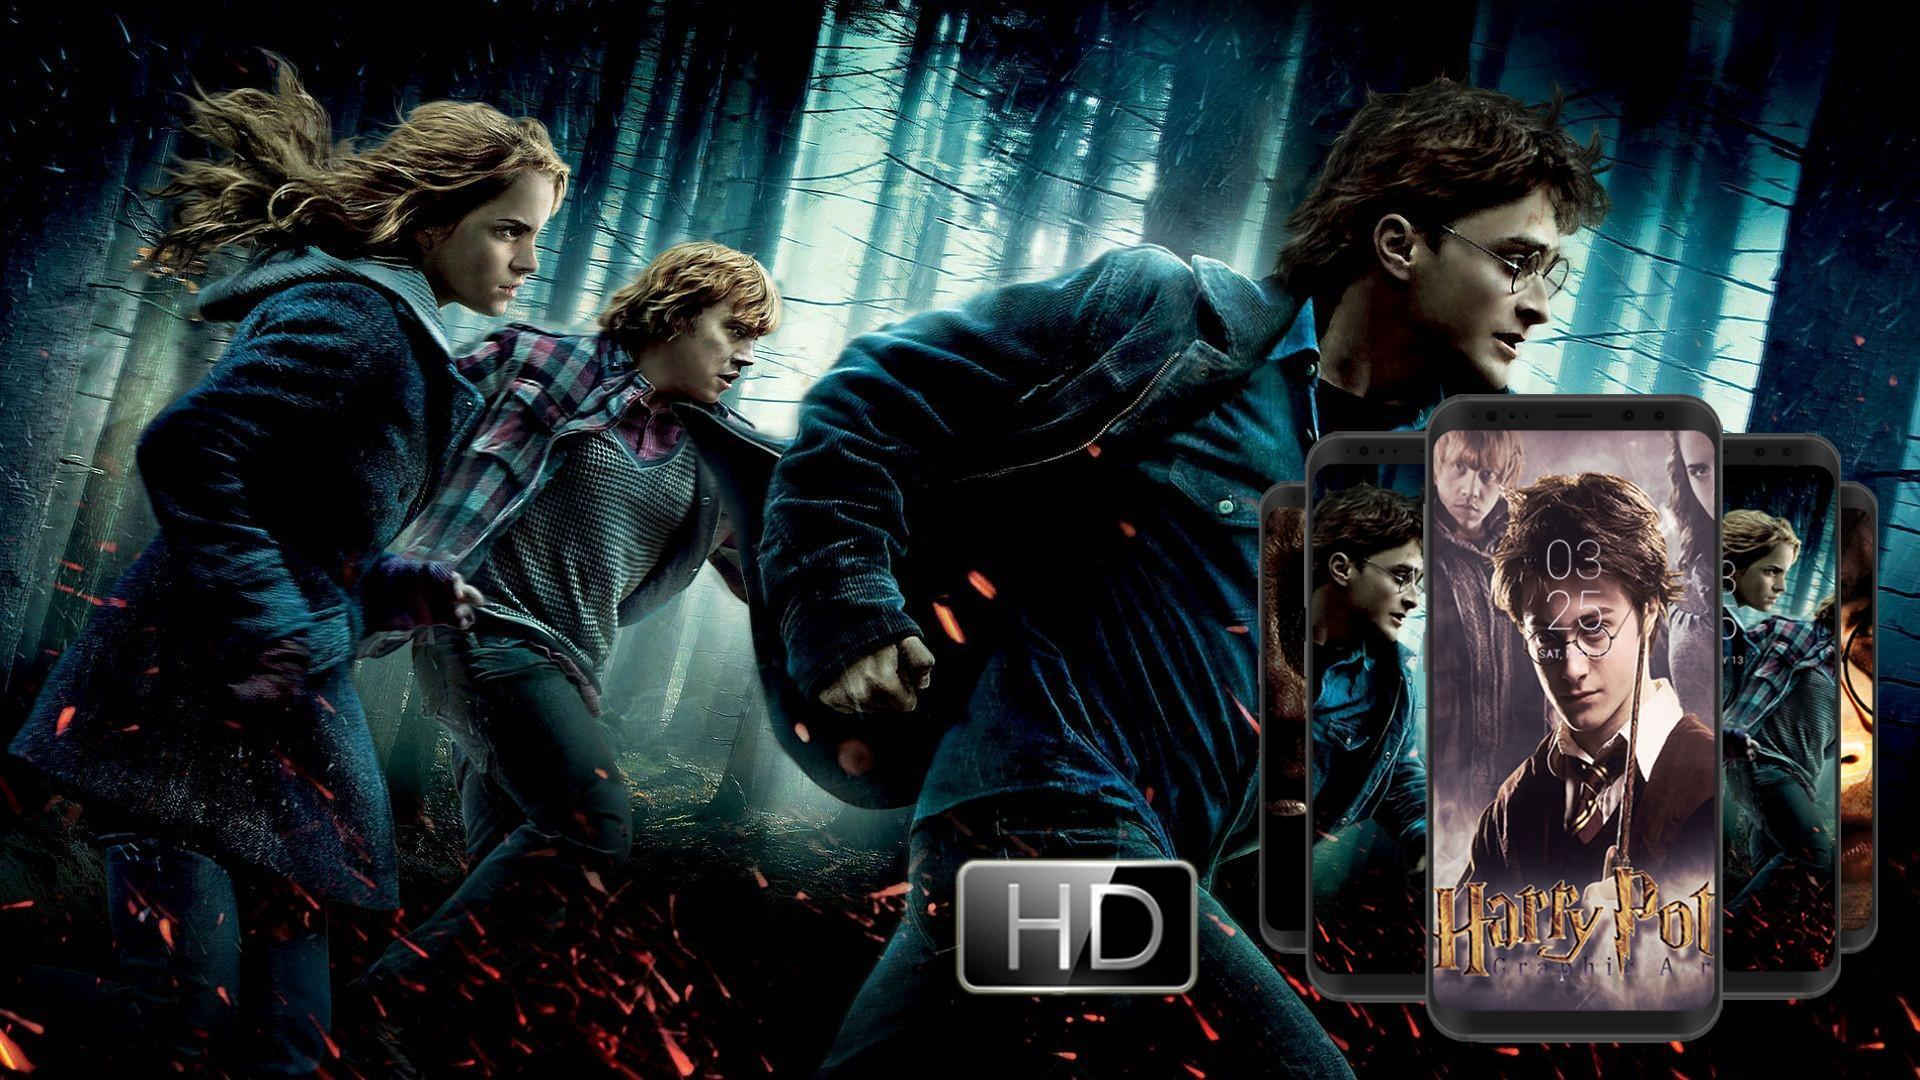 Harry Potter 2018 Hd Wallpapers For Android Apk Download